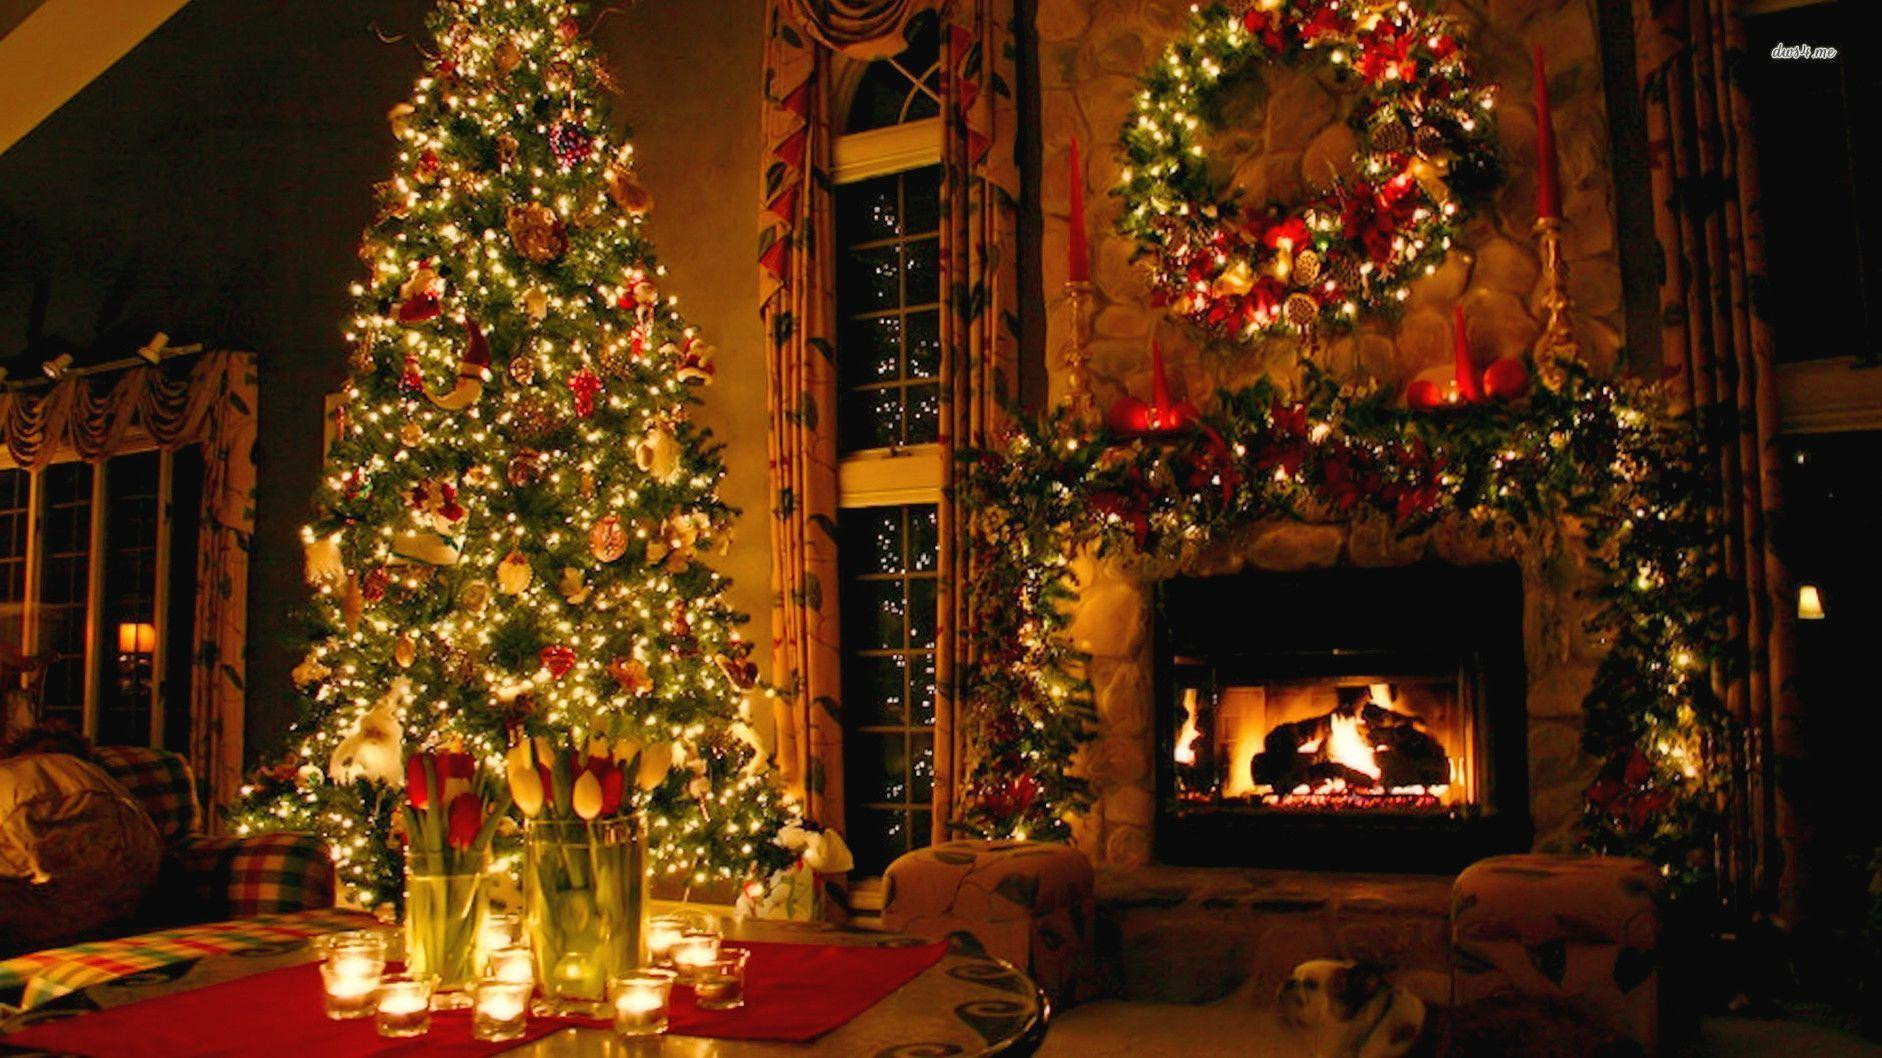 Christmas Tree Fireplace  Christmas Fireplace Backgrounds Wallpaper Cave